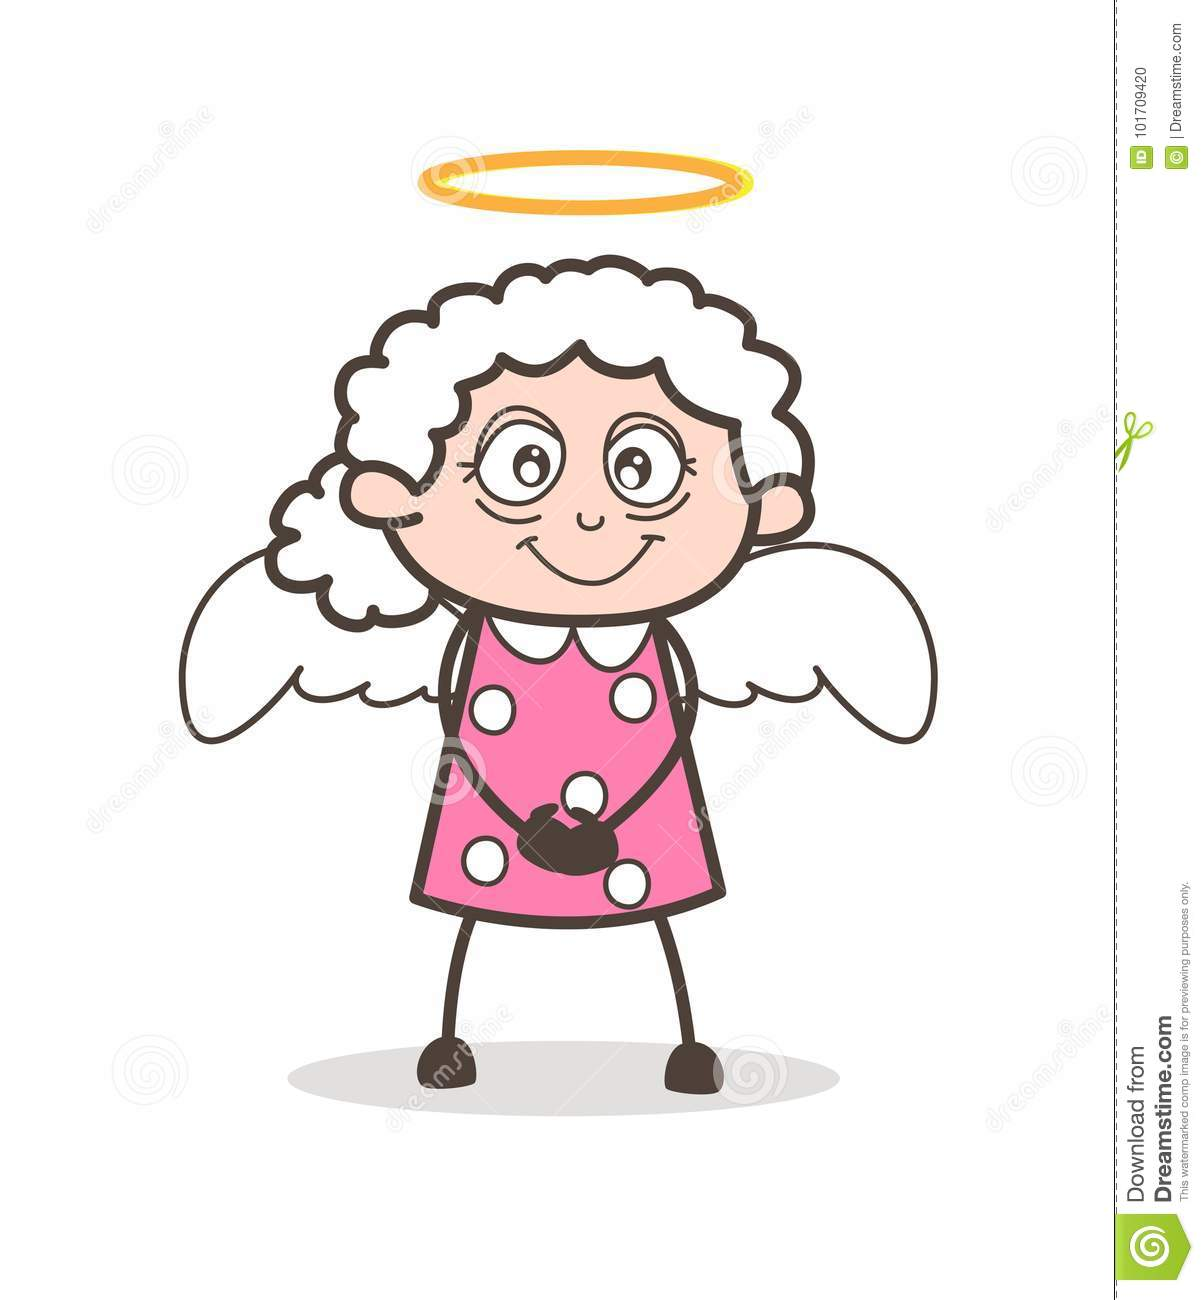 Cartoon Character Design Vector : Cartoon cute granny angel vector character stock